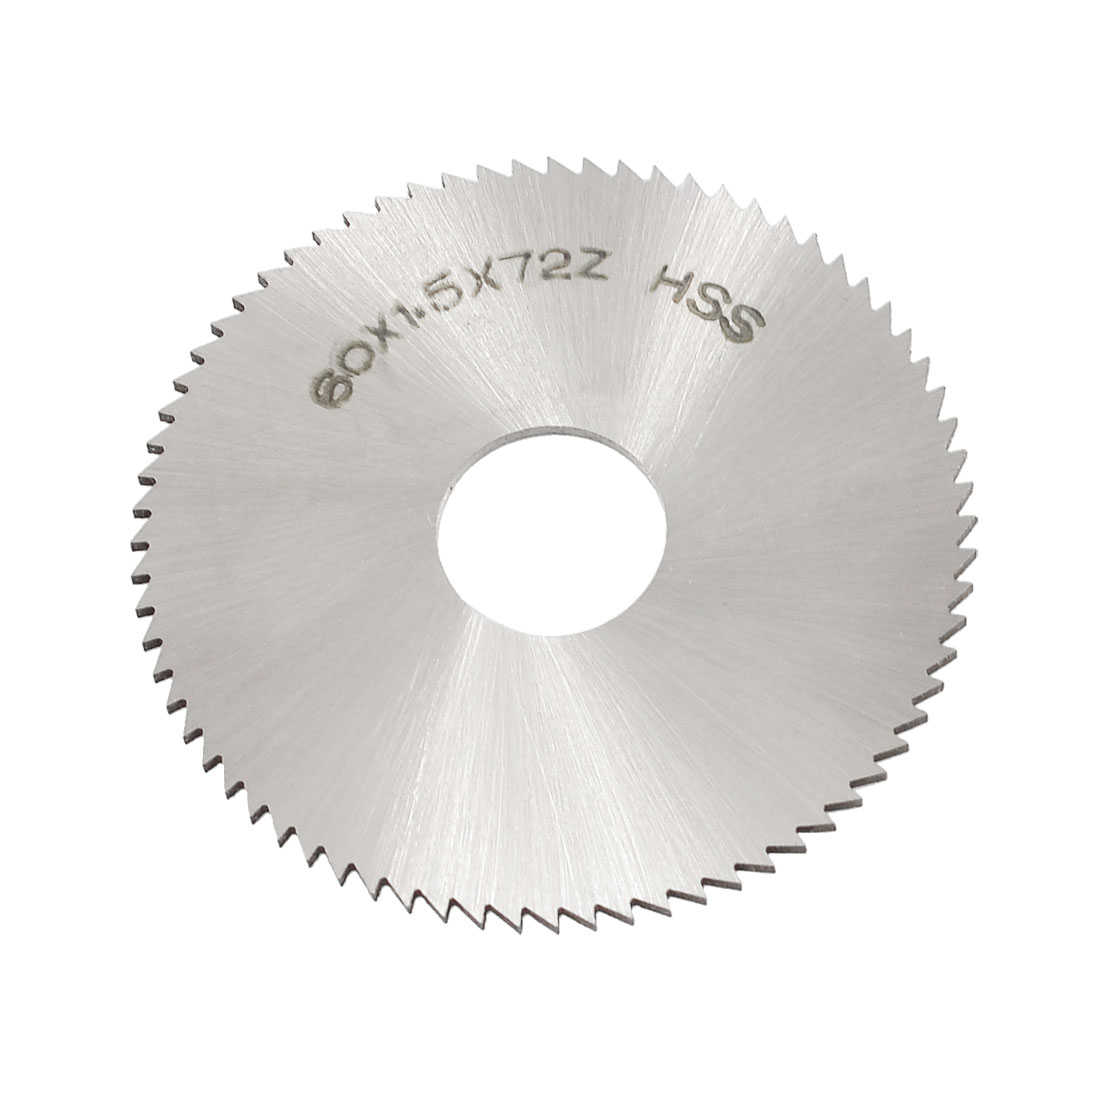 Unique Bargains Silver Tone HSS 60mm x 1.5mm x 16mm 72T Slitting Saw